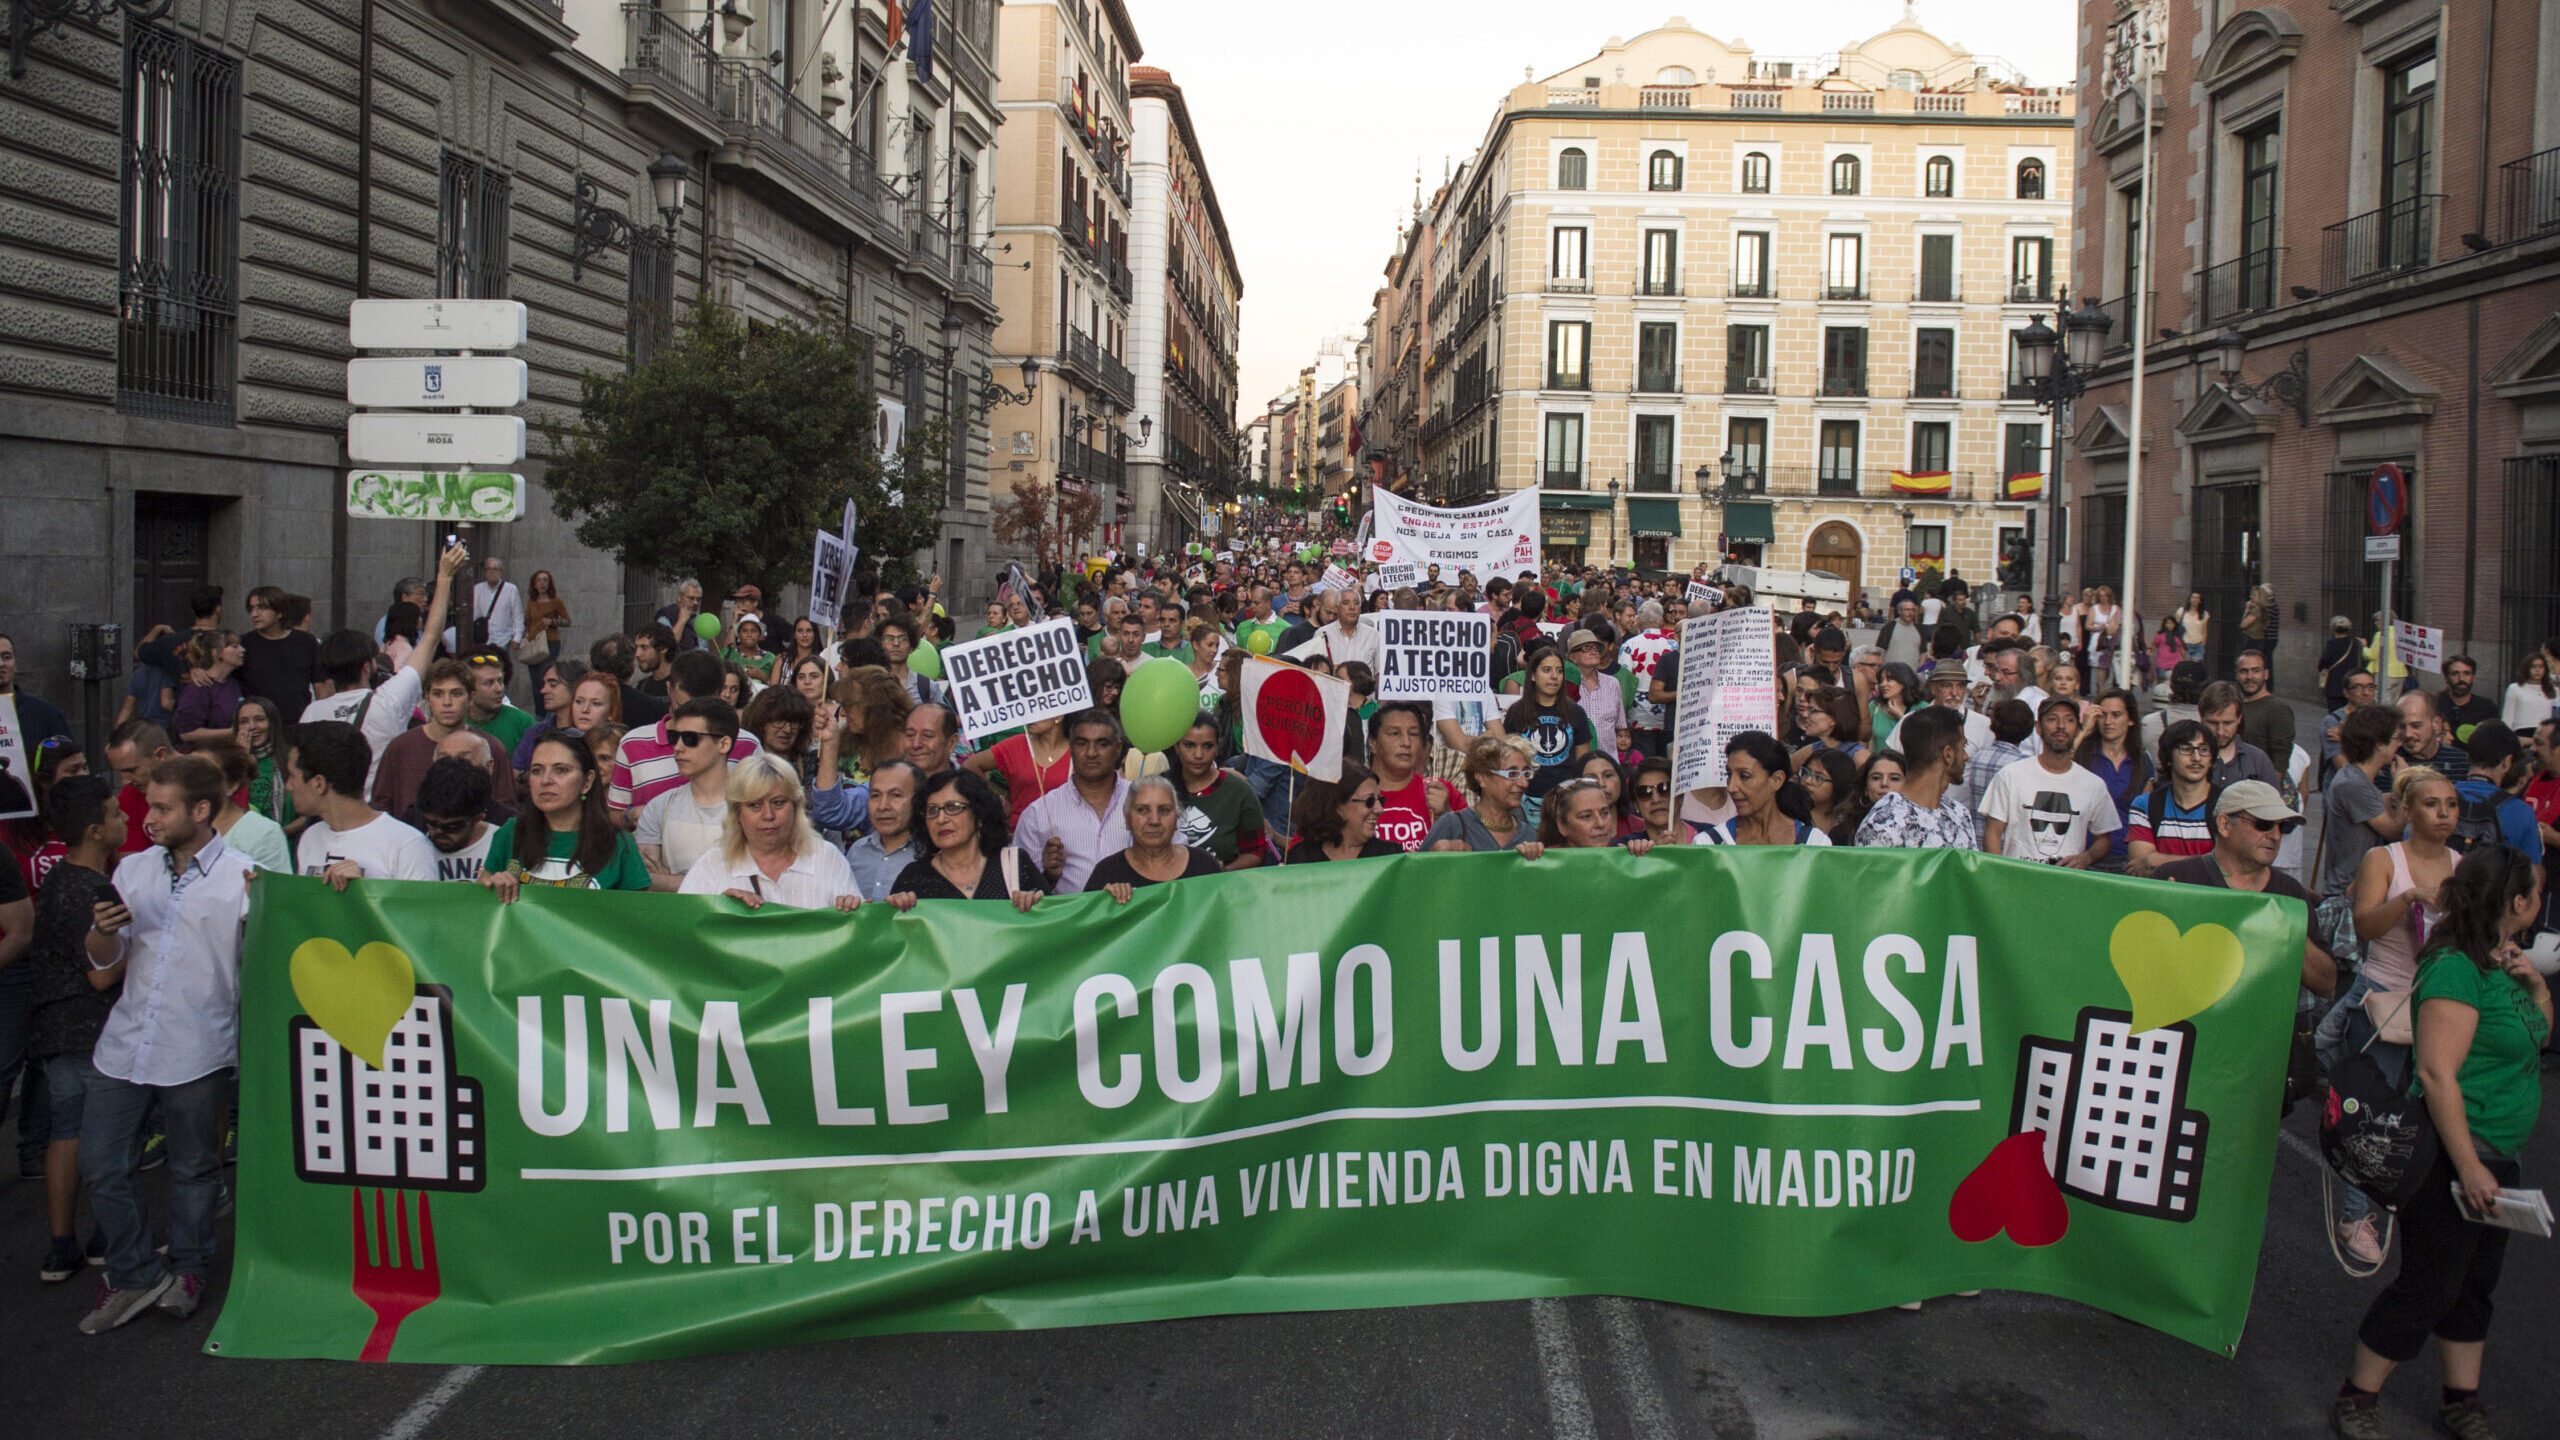 Housing Crisis: Political Parties Clash Over Rent Laws In Spain